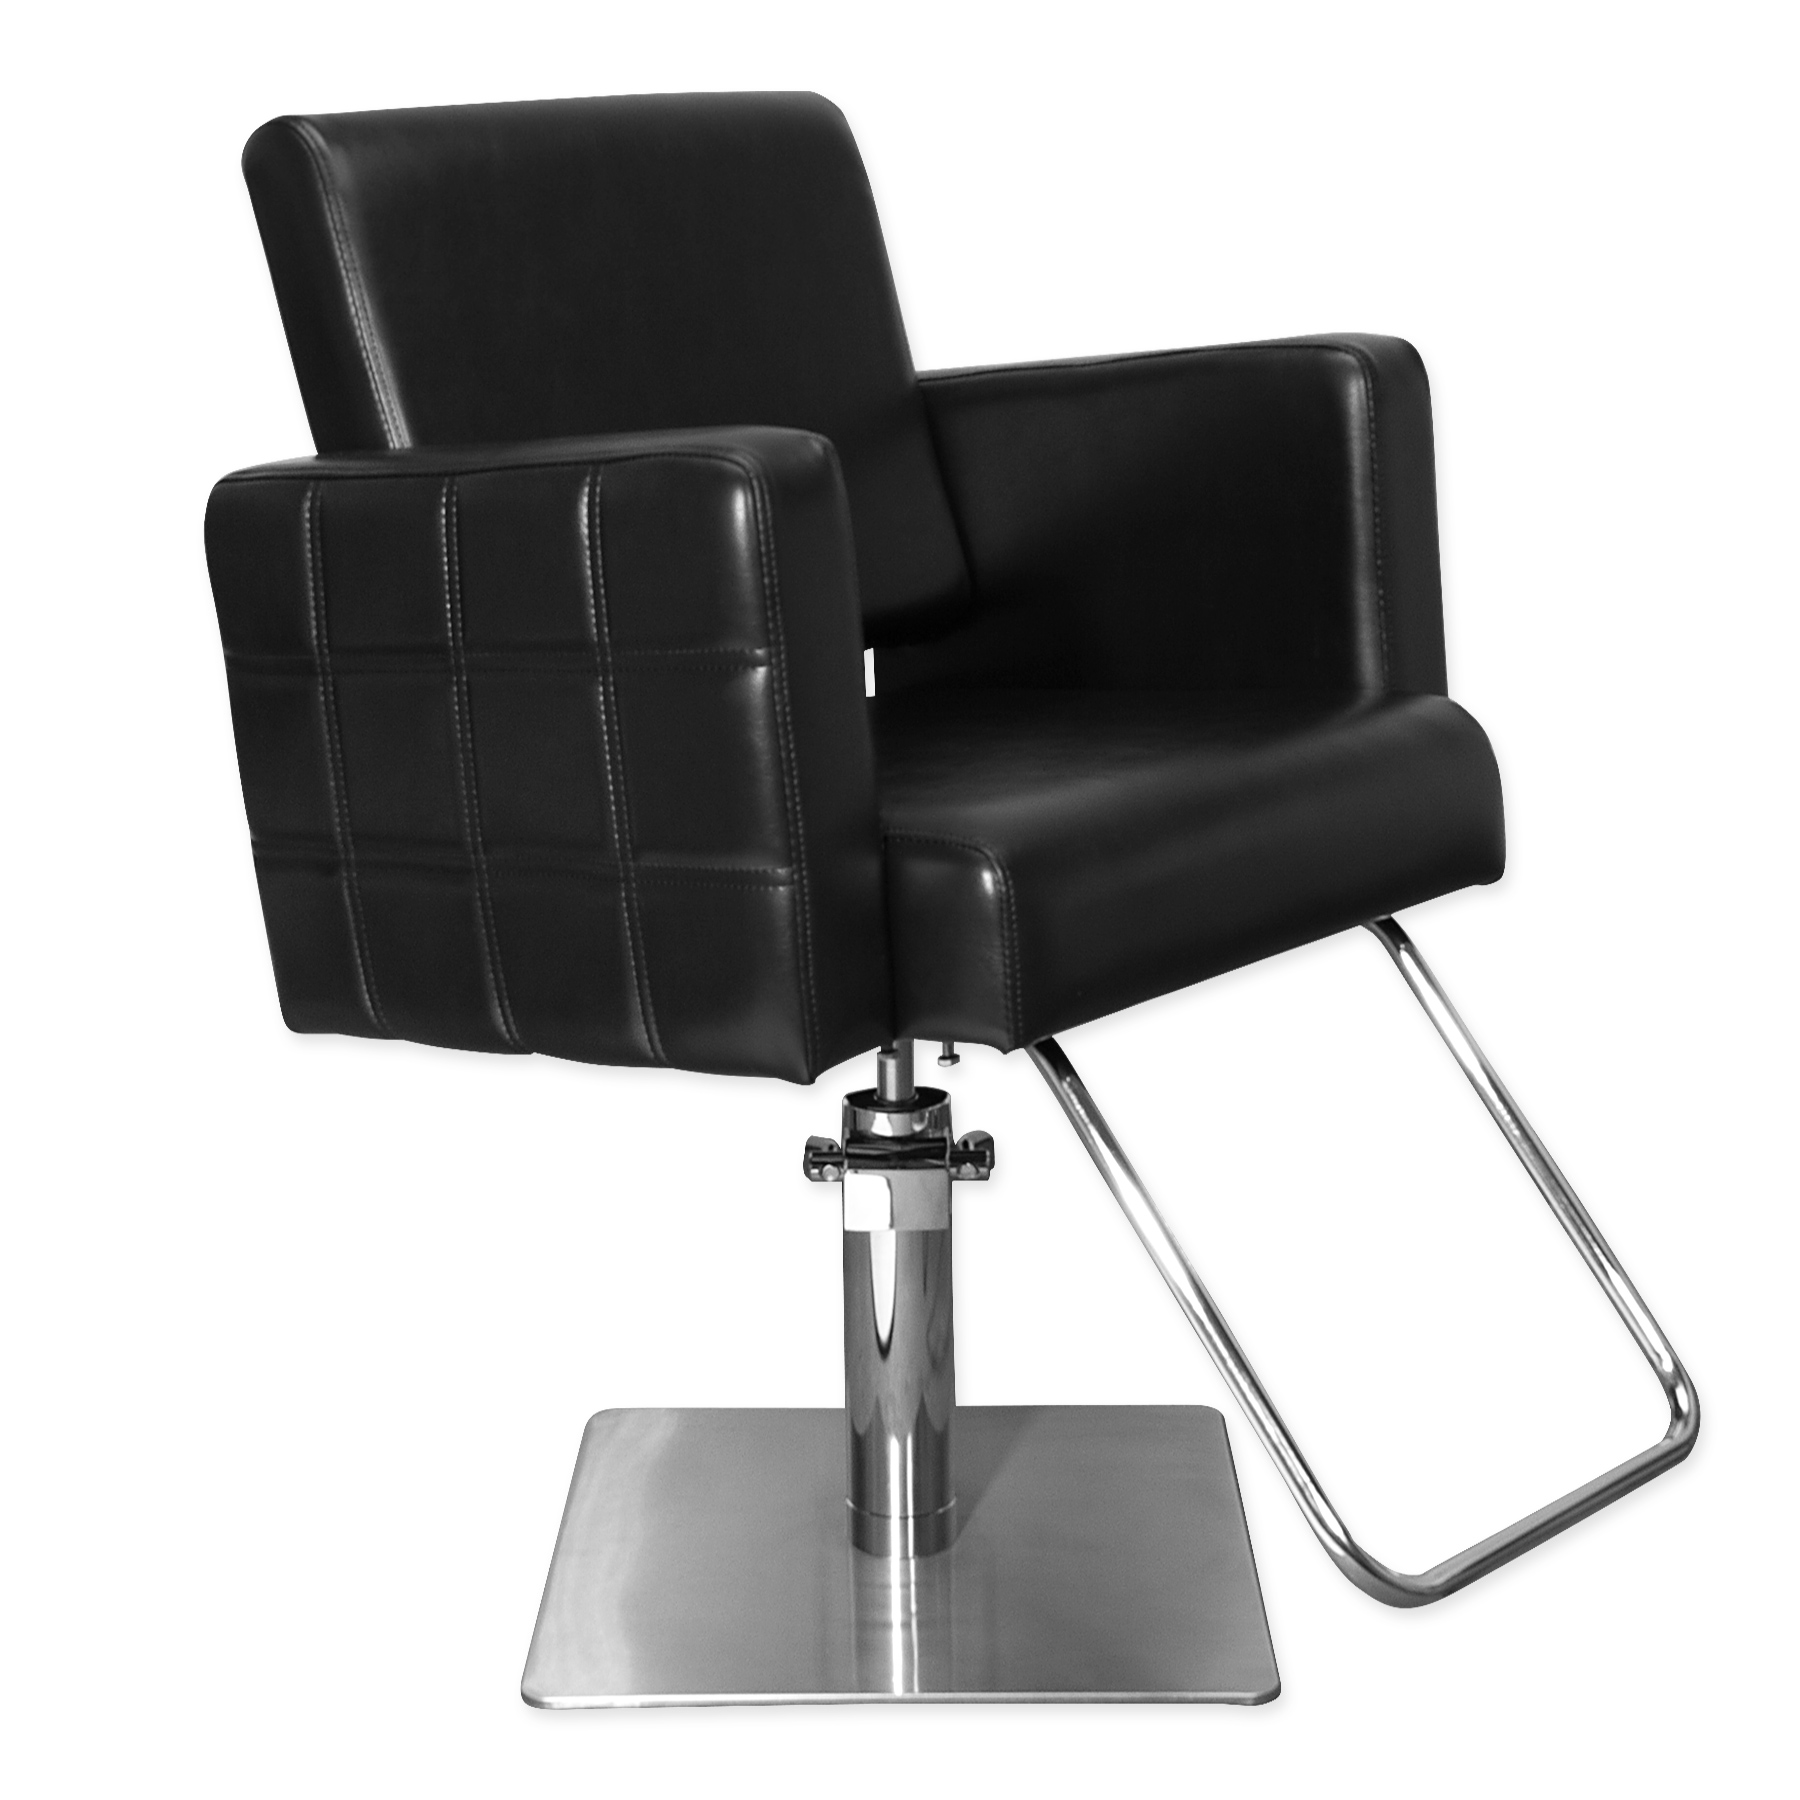 Quilted Havana Stylist Chair Black Salon Styling Chair Salonsmart